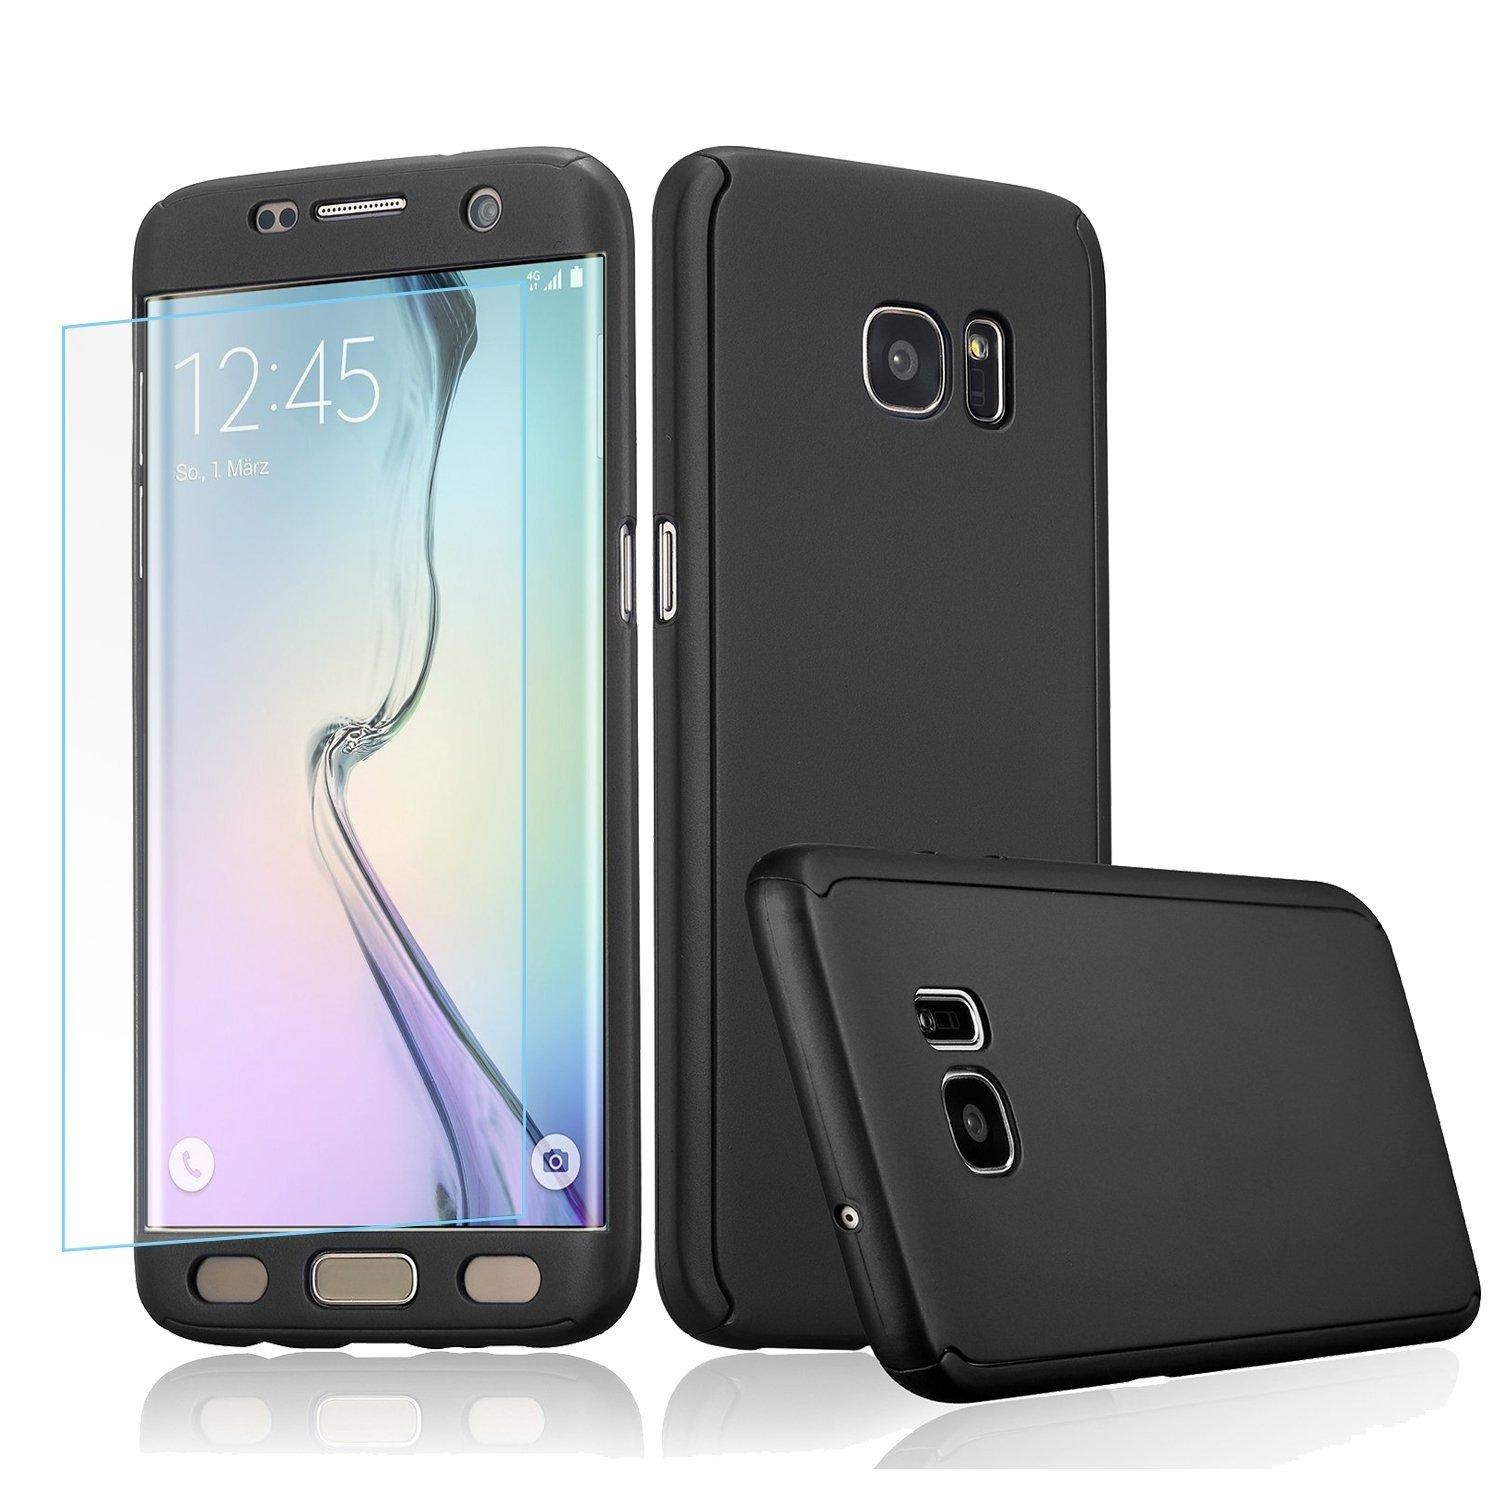 ... 360 Full Body Coverage Protection Hard Slim Ultra-thin Hybrid Case Cover with Tempered Glass ...